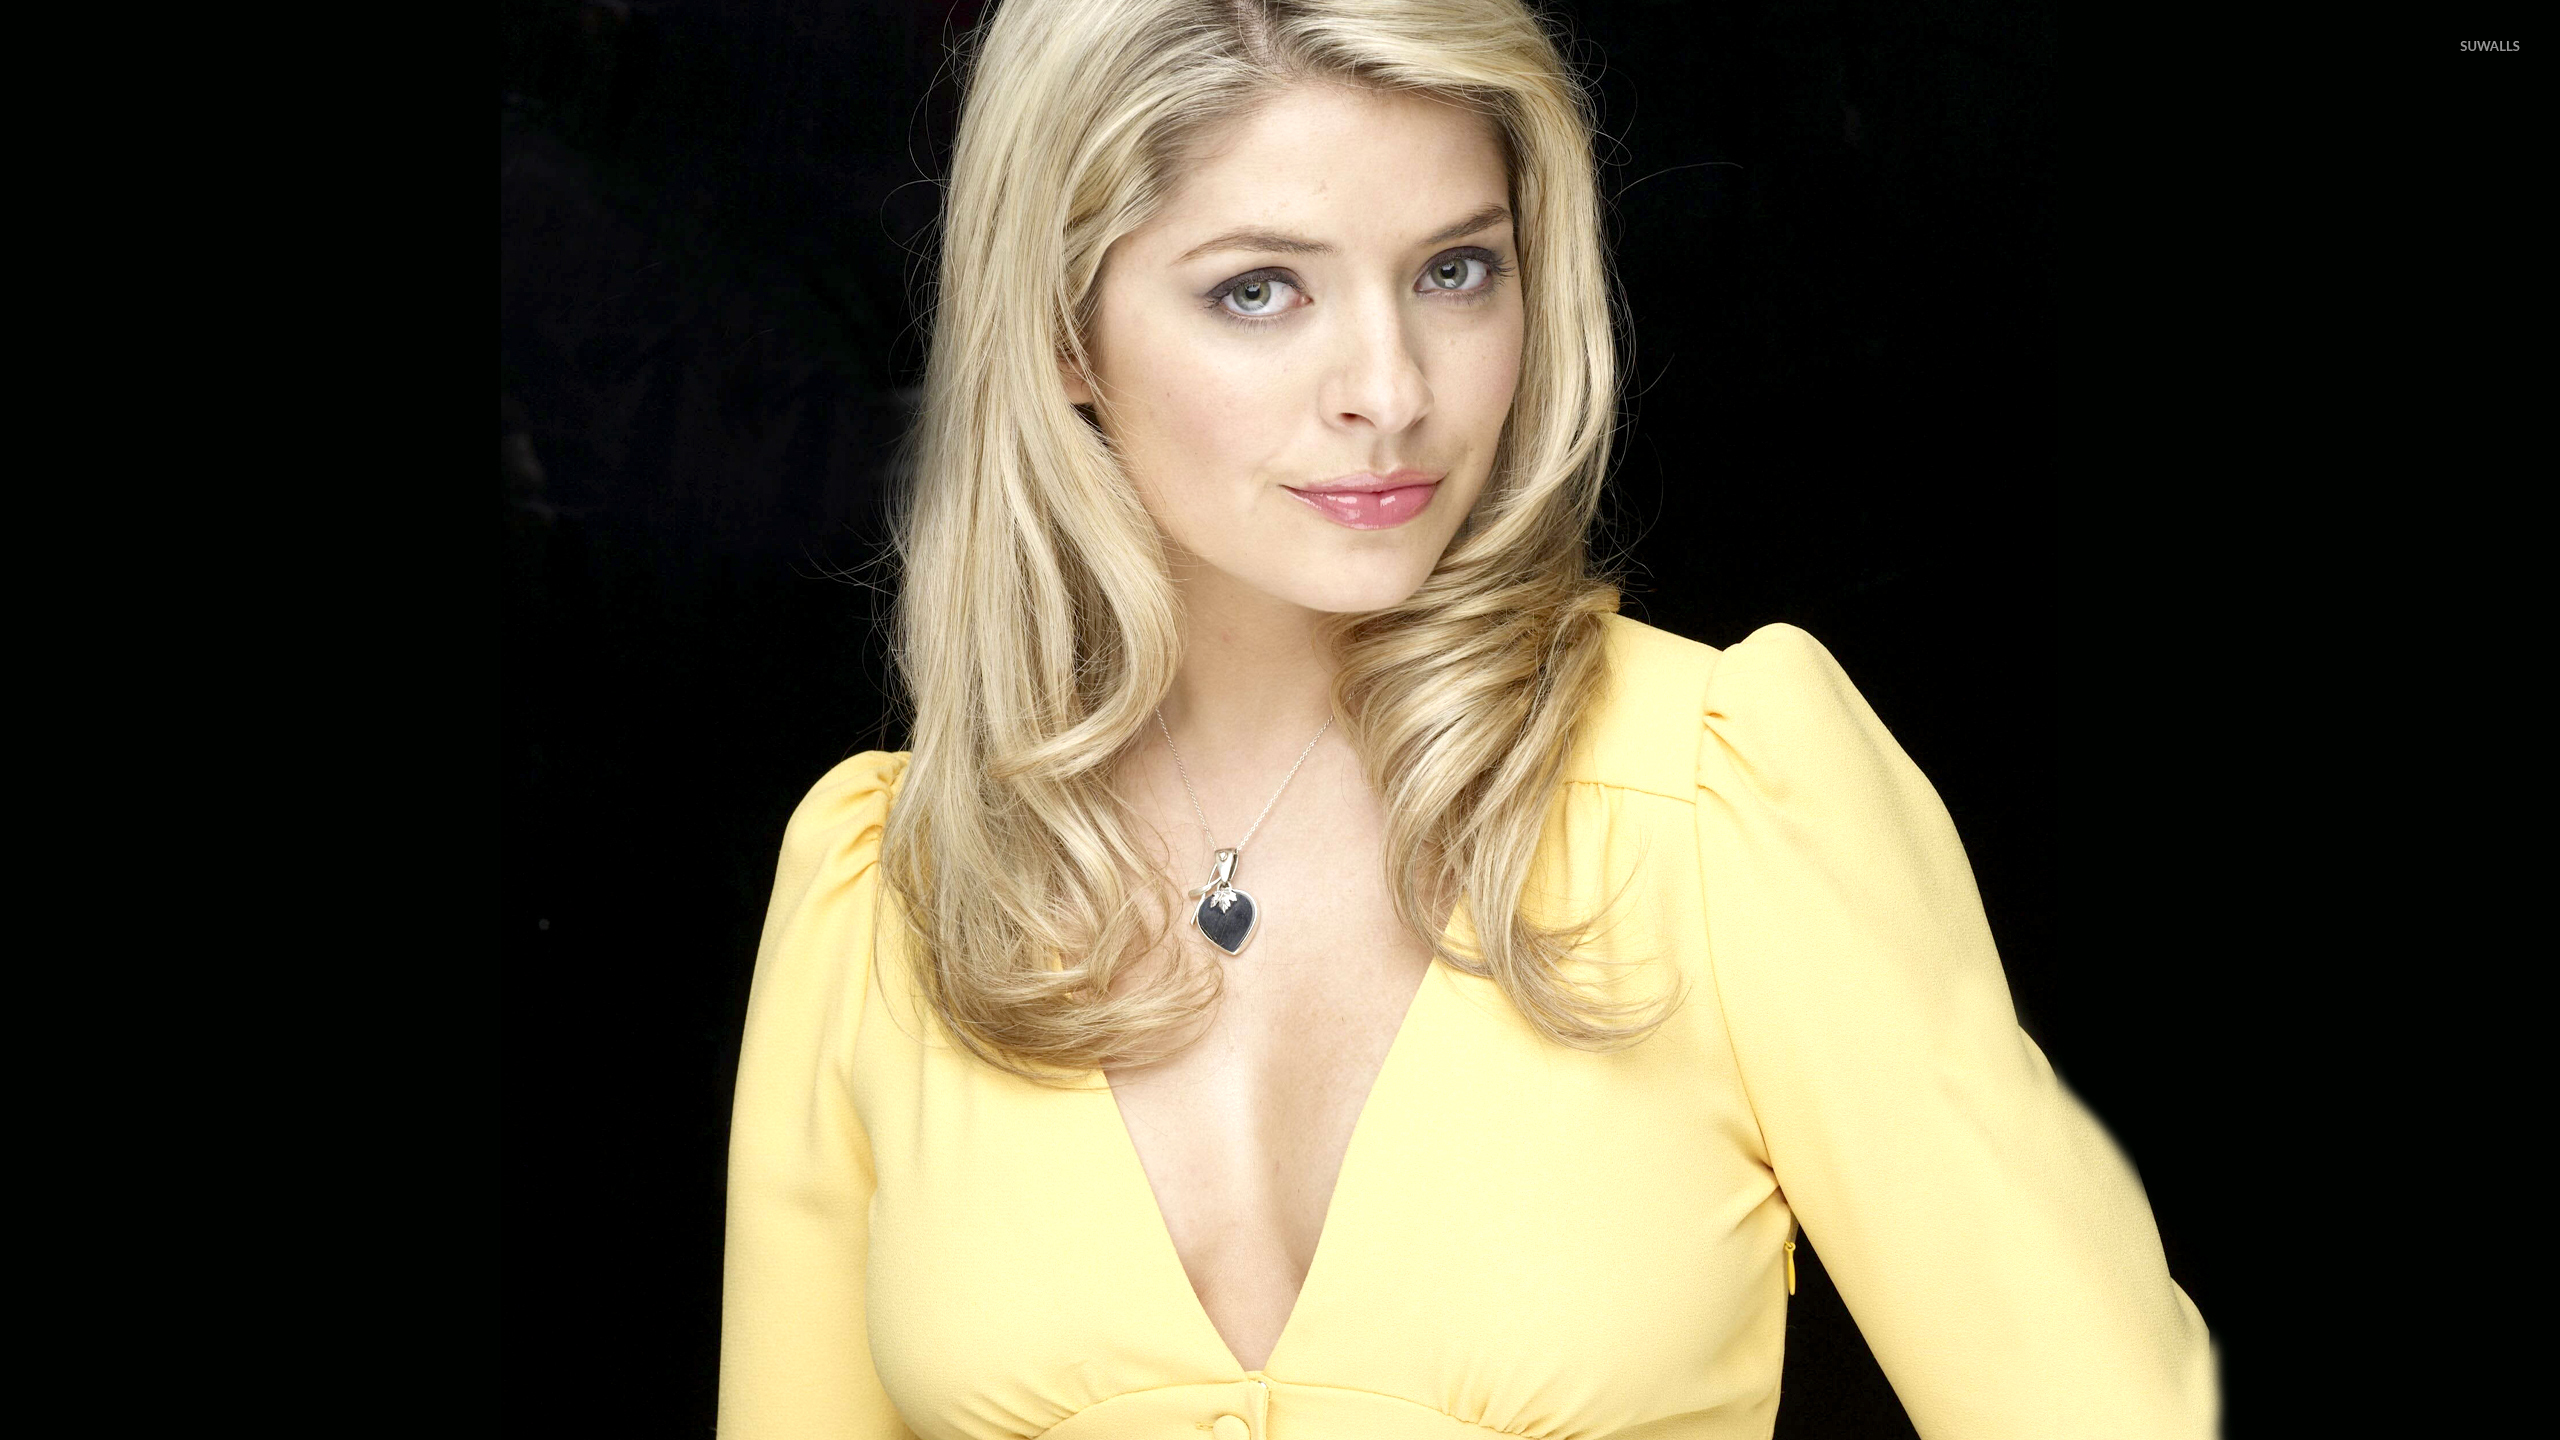 holly willoughby wallpaper 9510 - photo #13